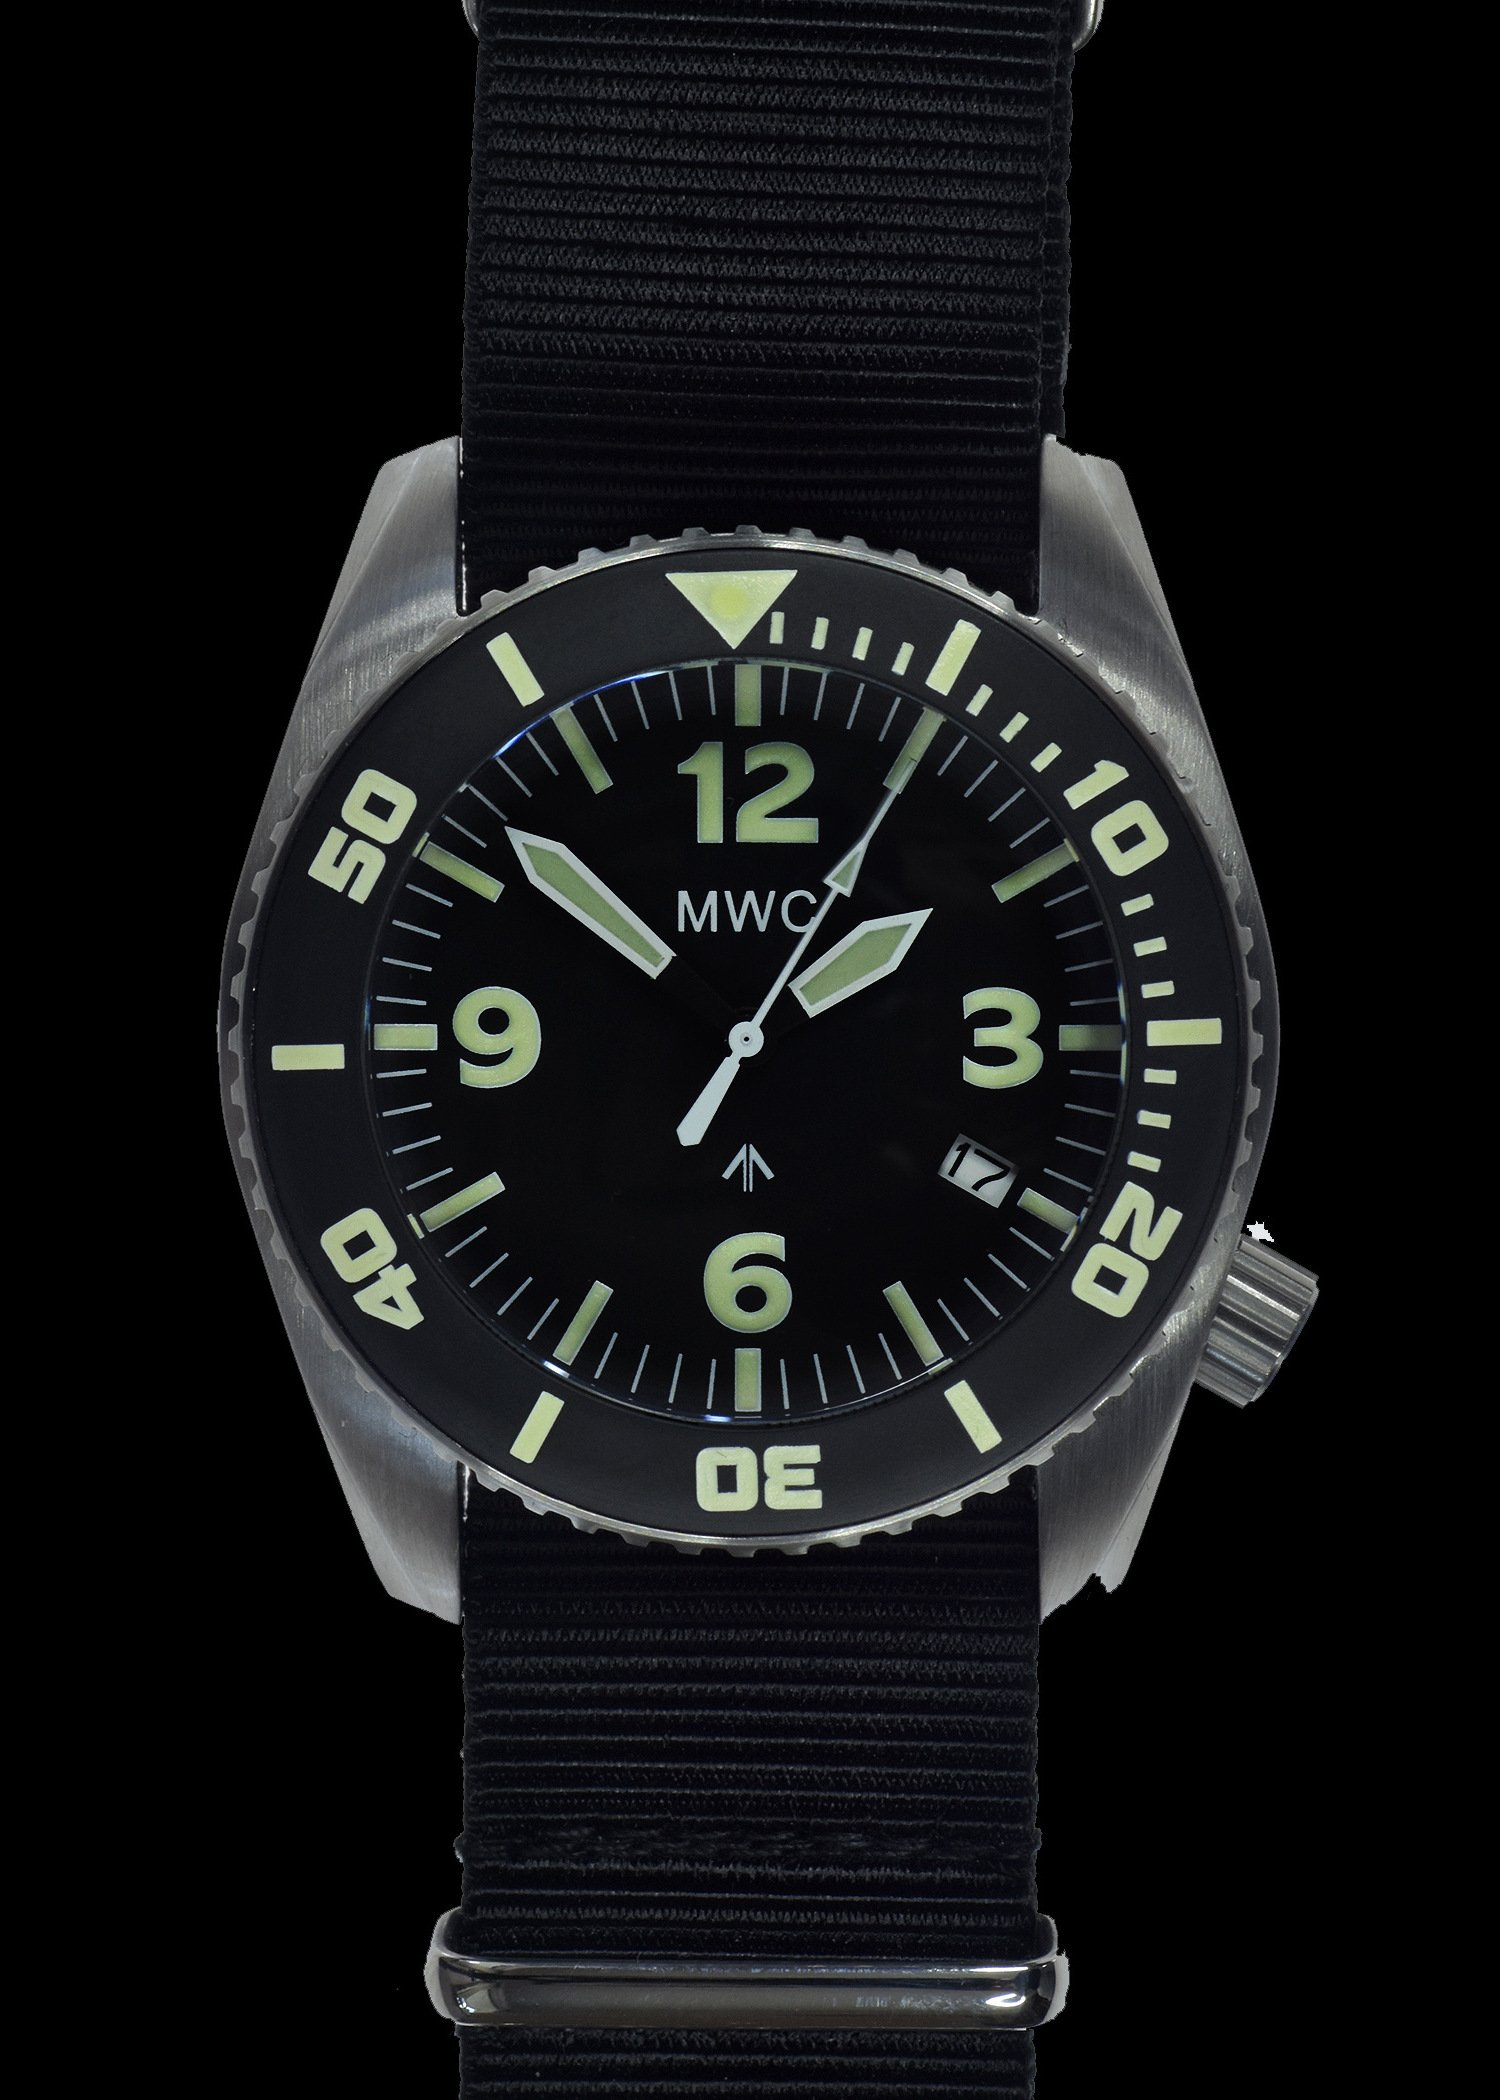 Водолазен часовник DEPTHMASTER Quartz 1000m / 100atm Military Divers Helium – MWC